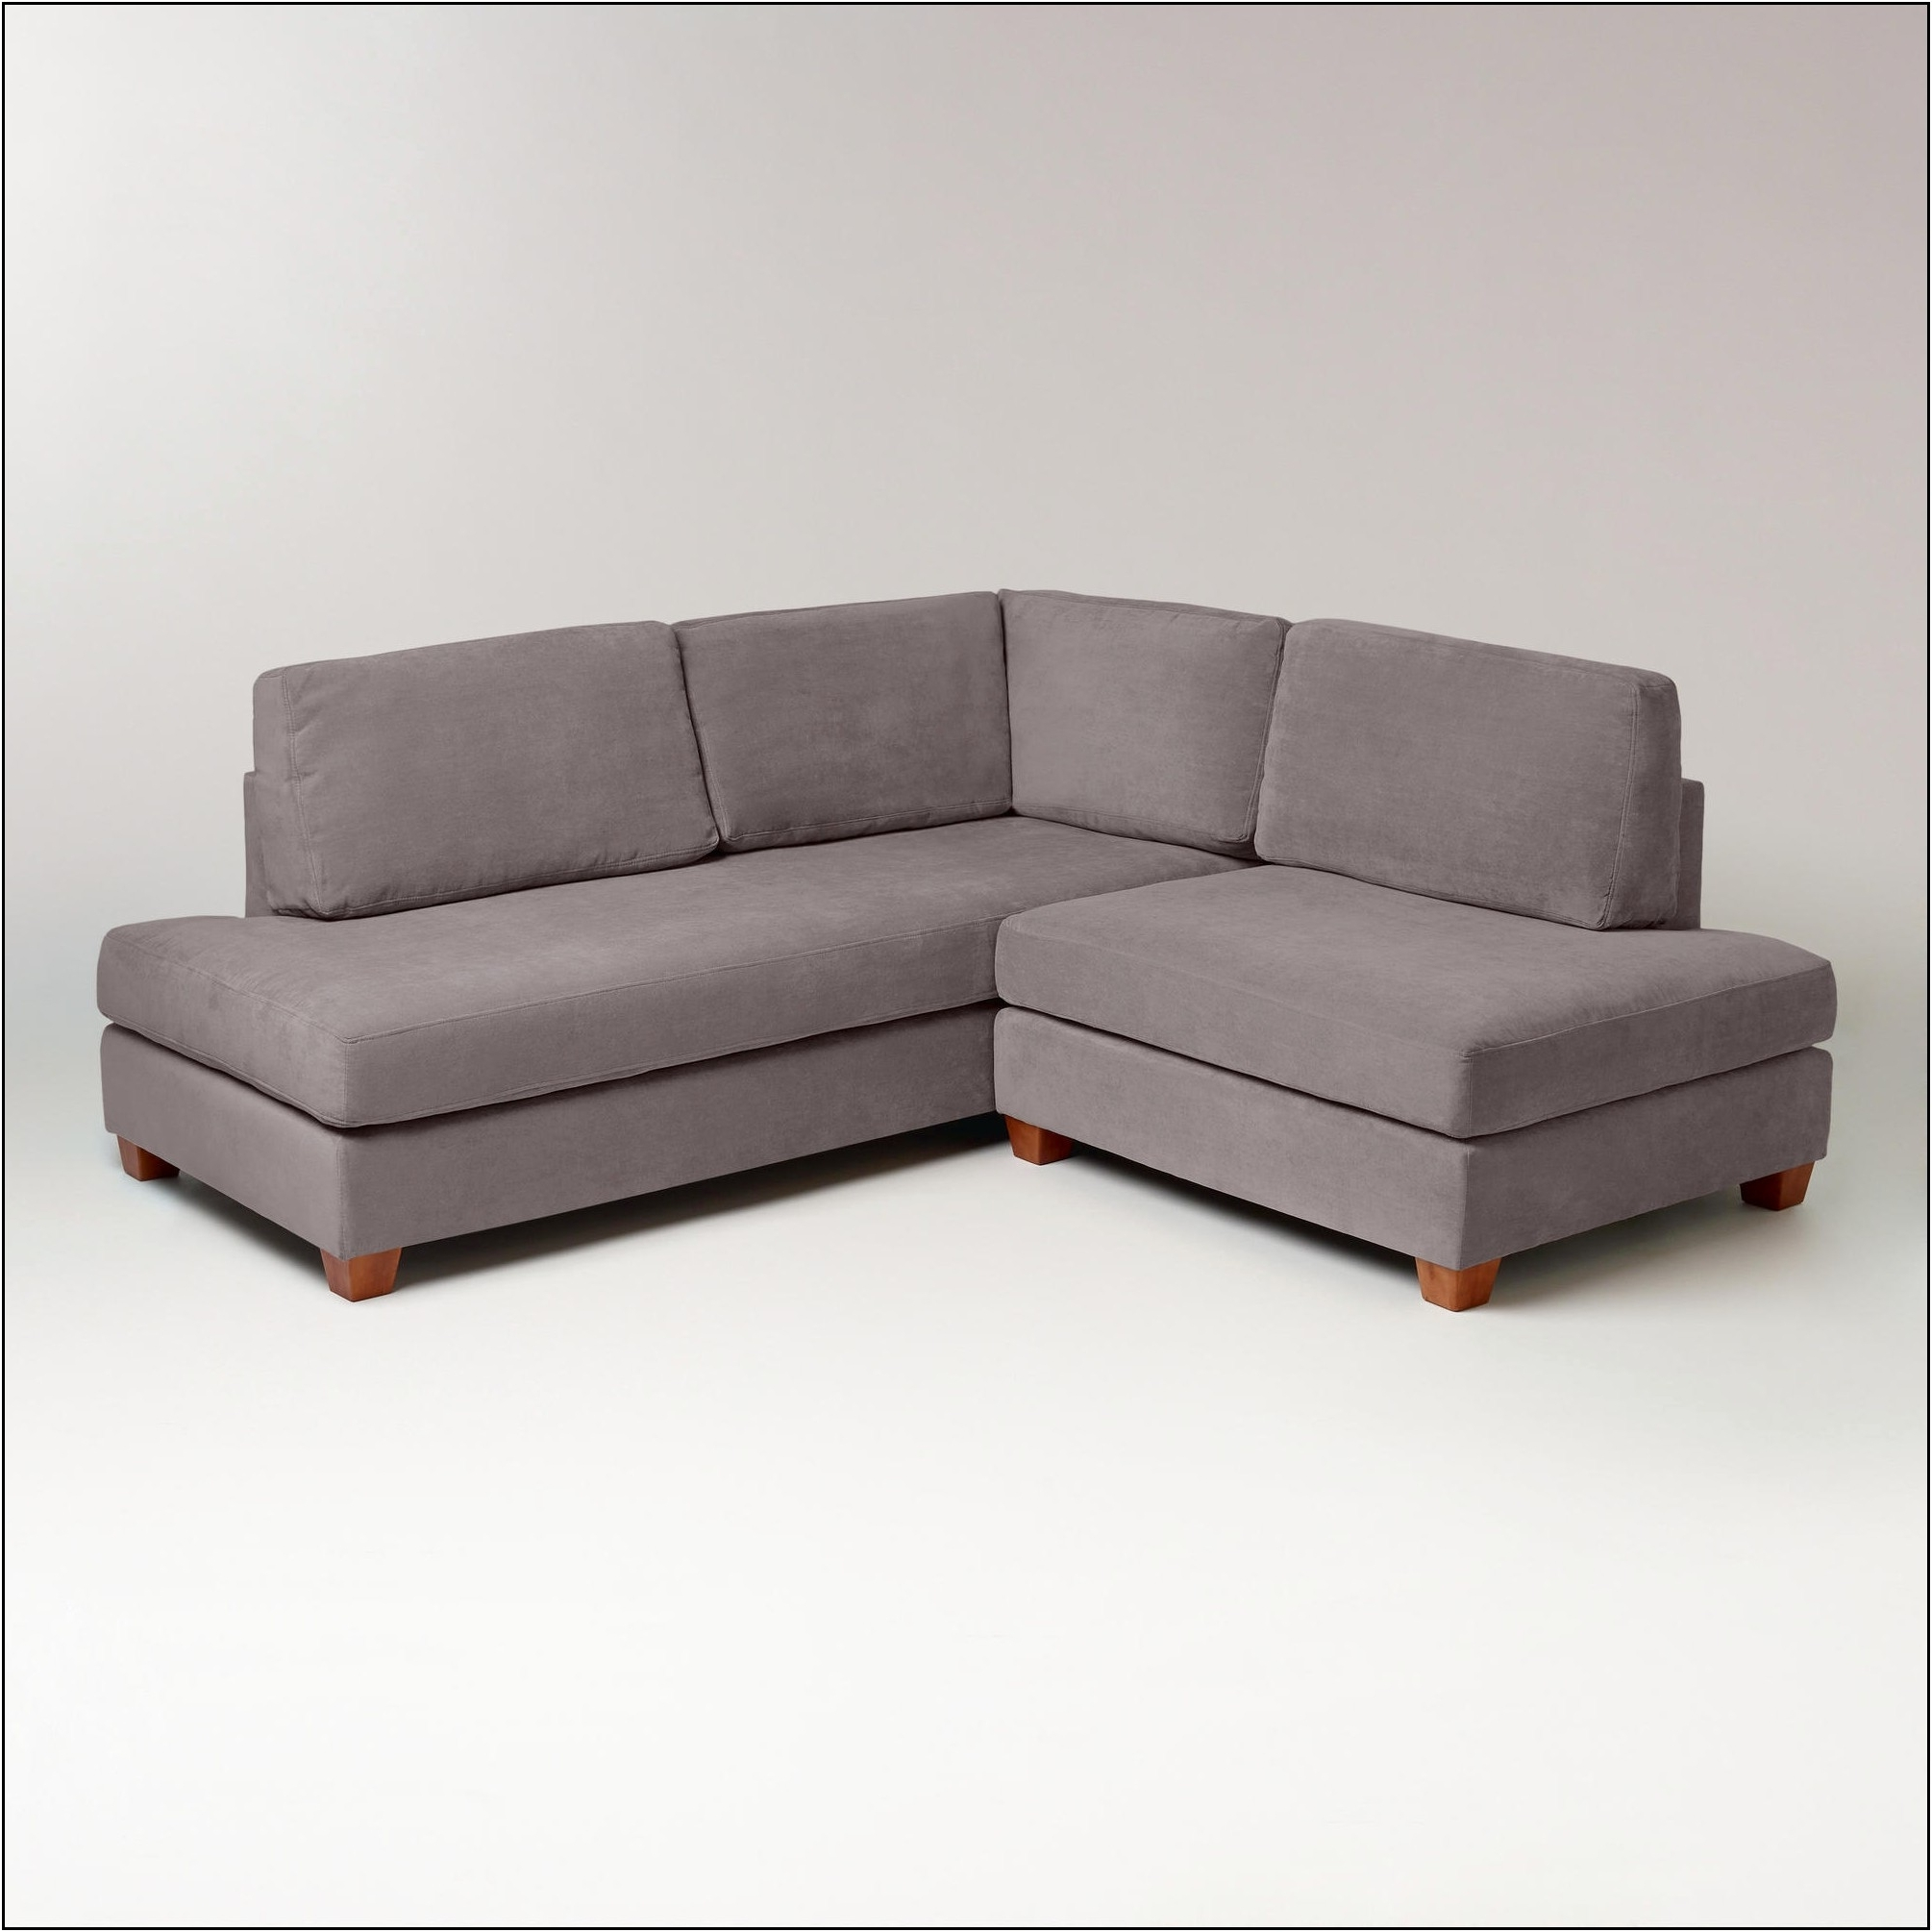 Furniture: High Quality Cotton Material For Couch Slipcovers Ikea Inside Current Target Sectional Sofas (View 6 of 15)